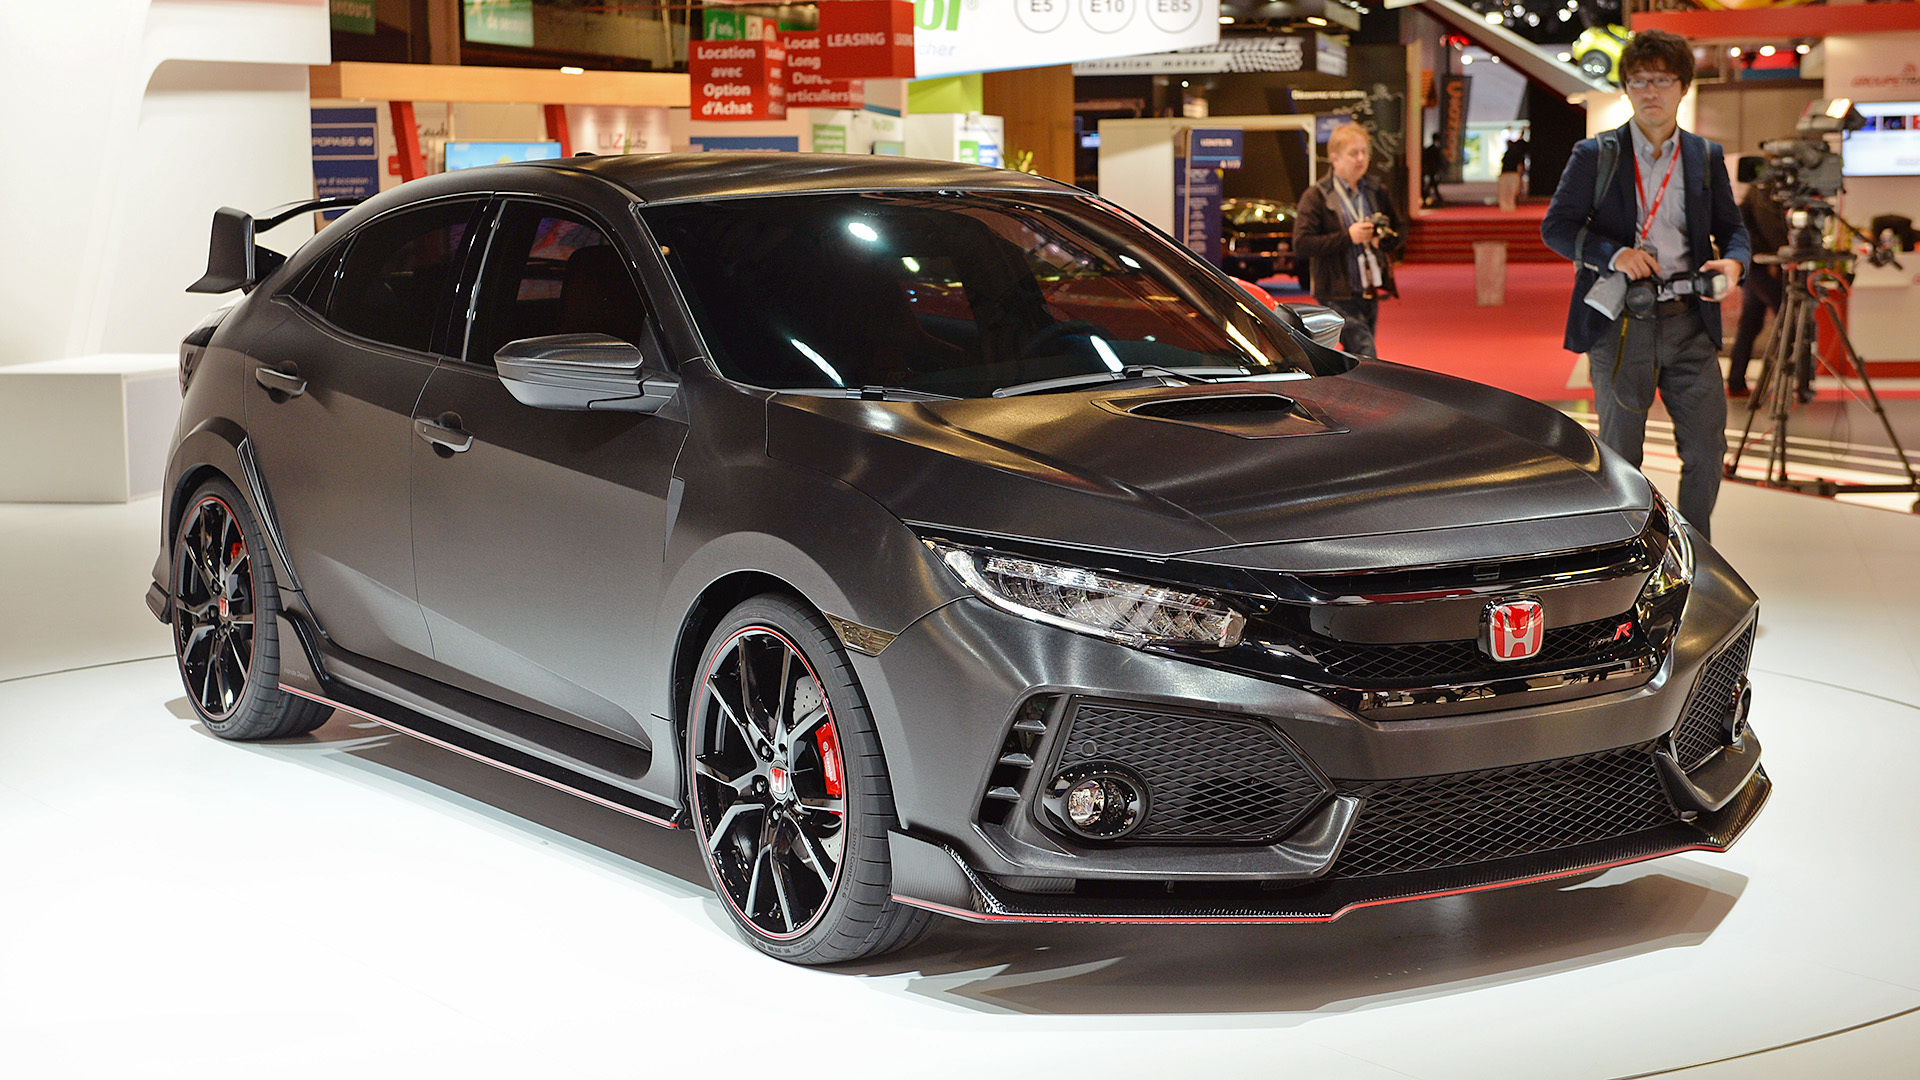 honda civic type r concept paris 2016 0 autoblog. Black Bedroom Furniture Sets. Home Design Ideas